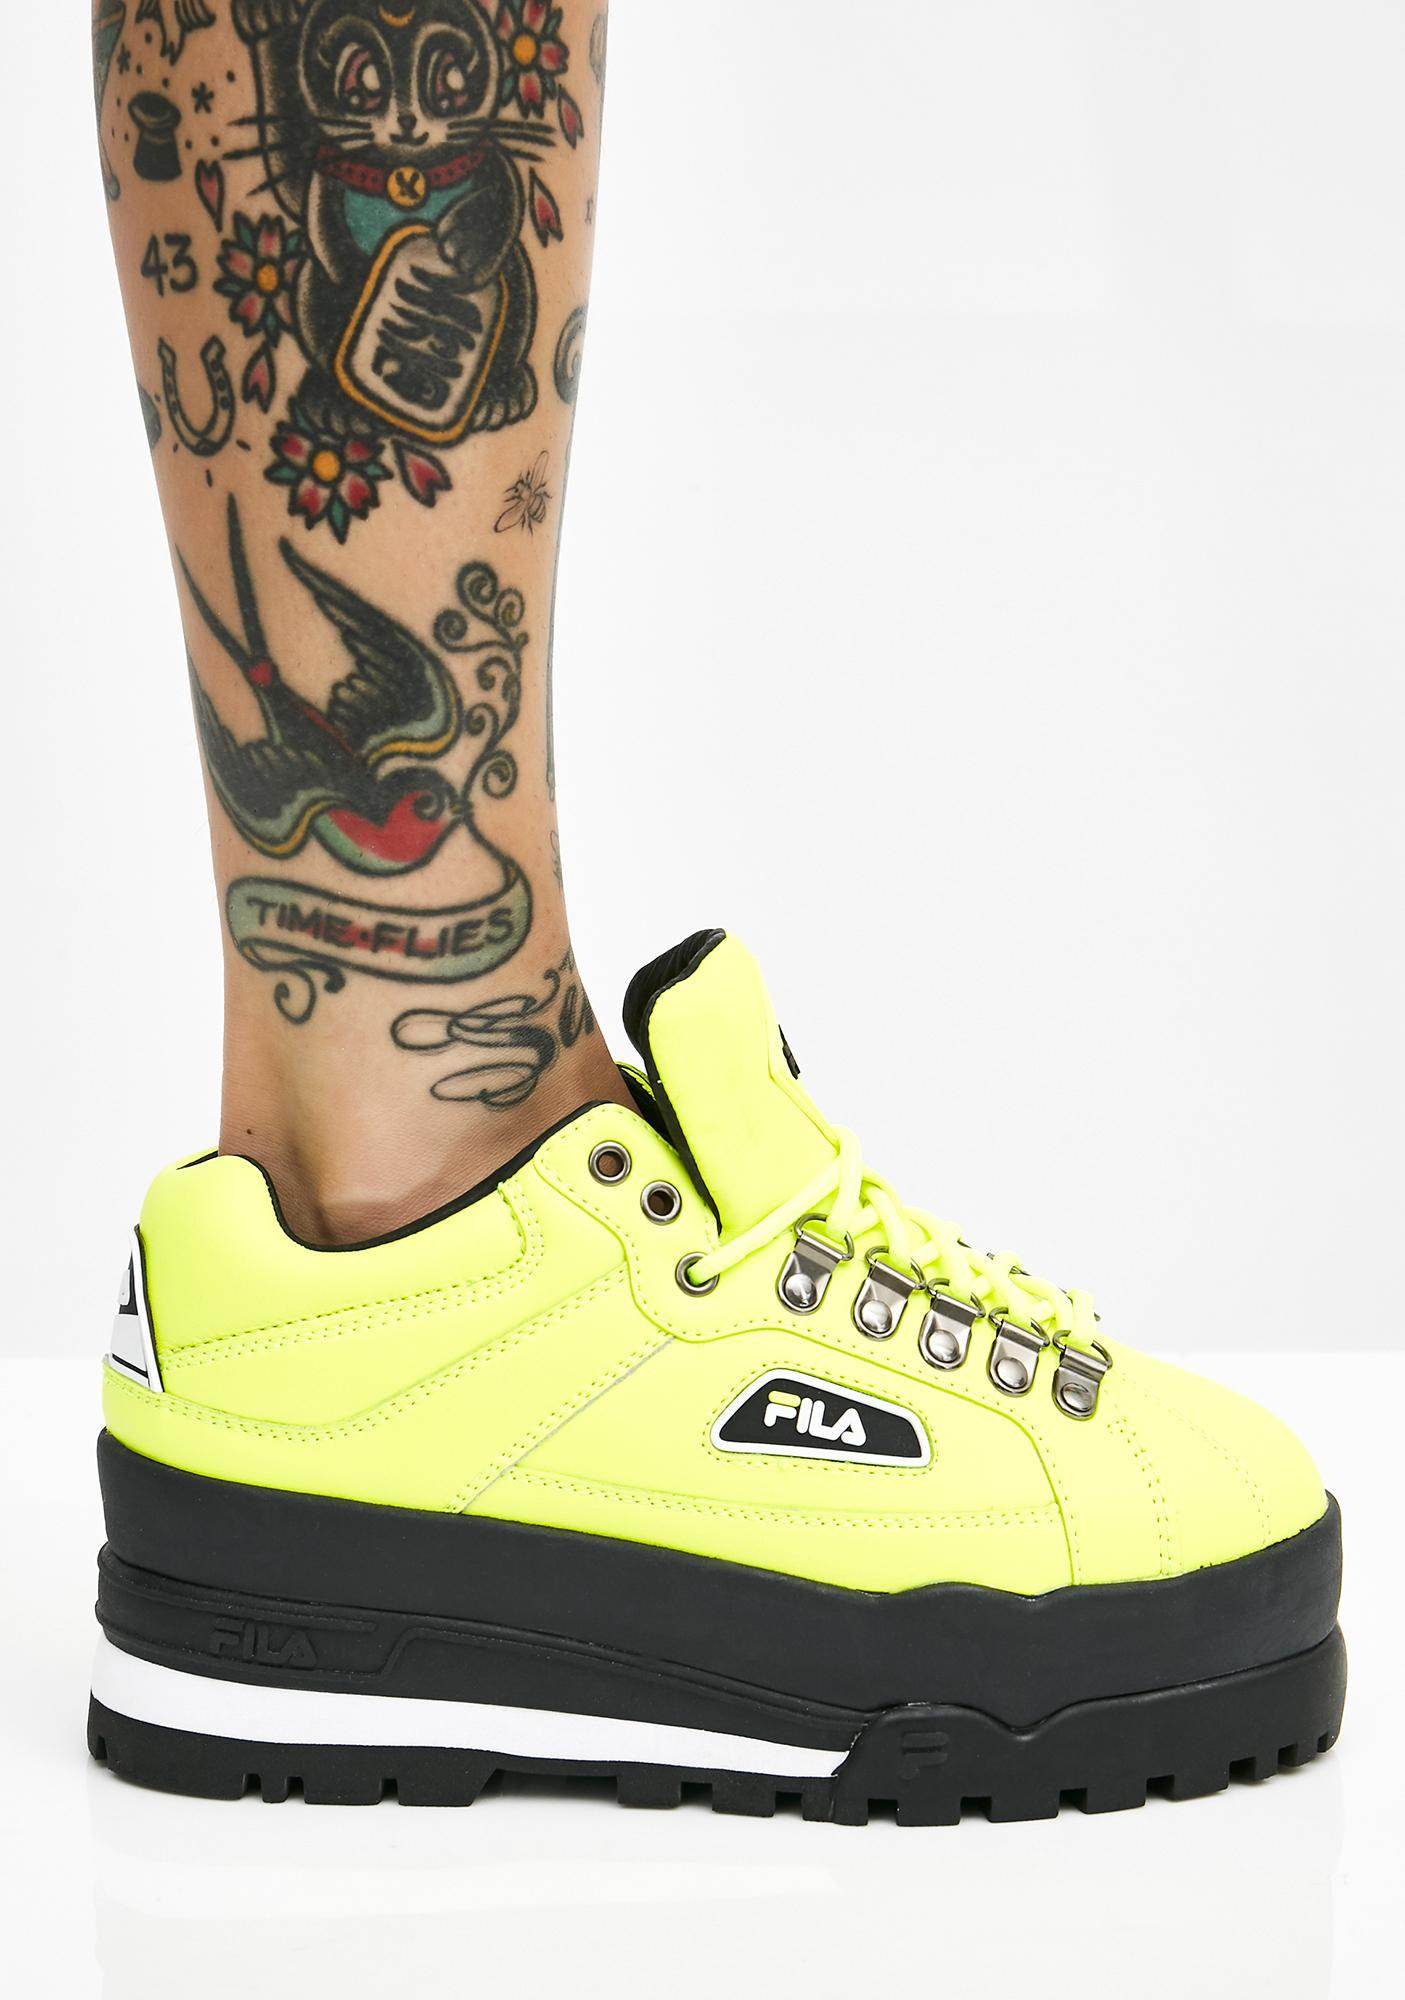 Fila Biohazard Trailblazer Wedge Sneakers